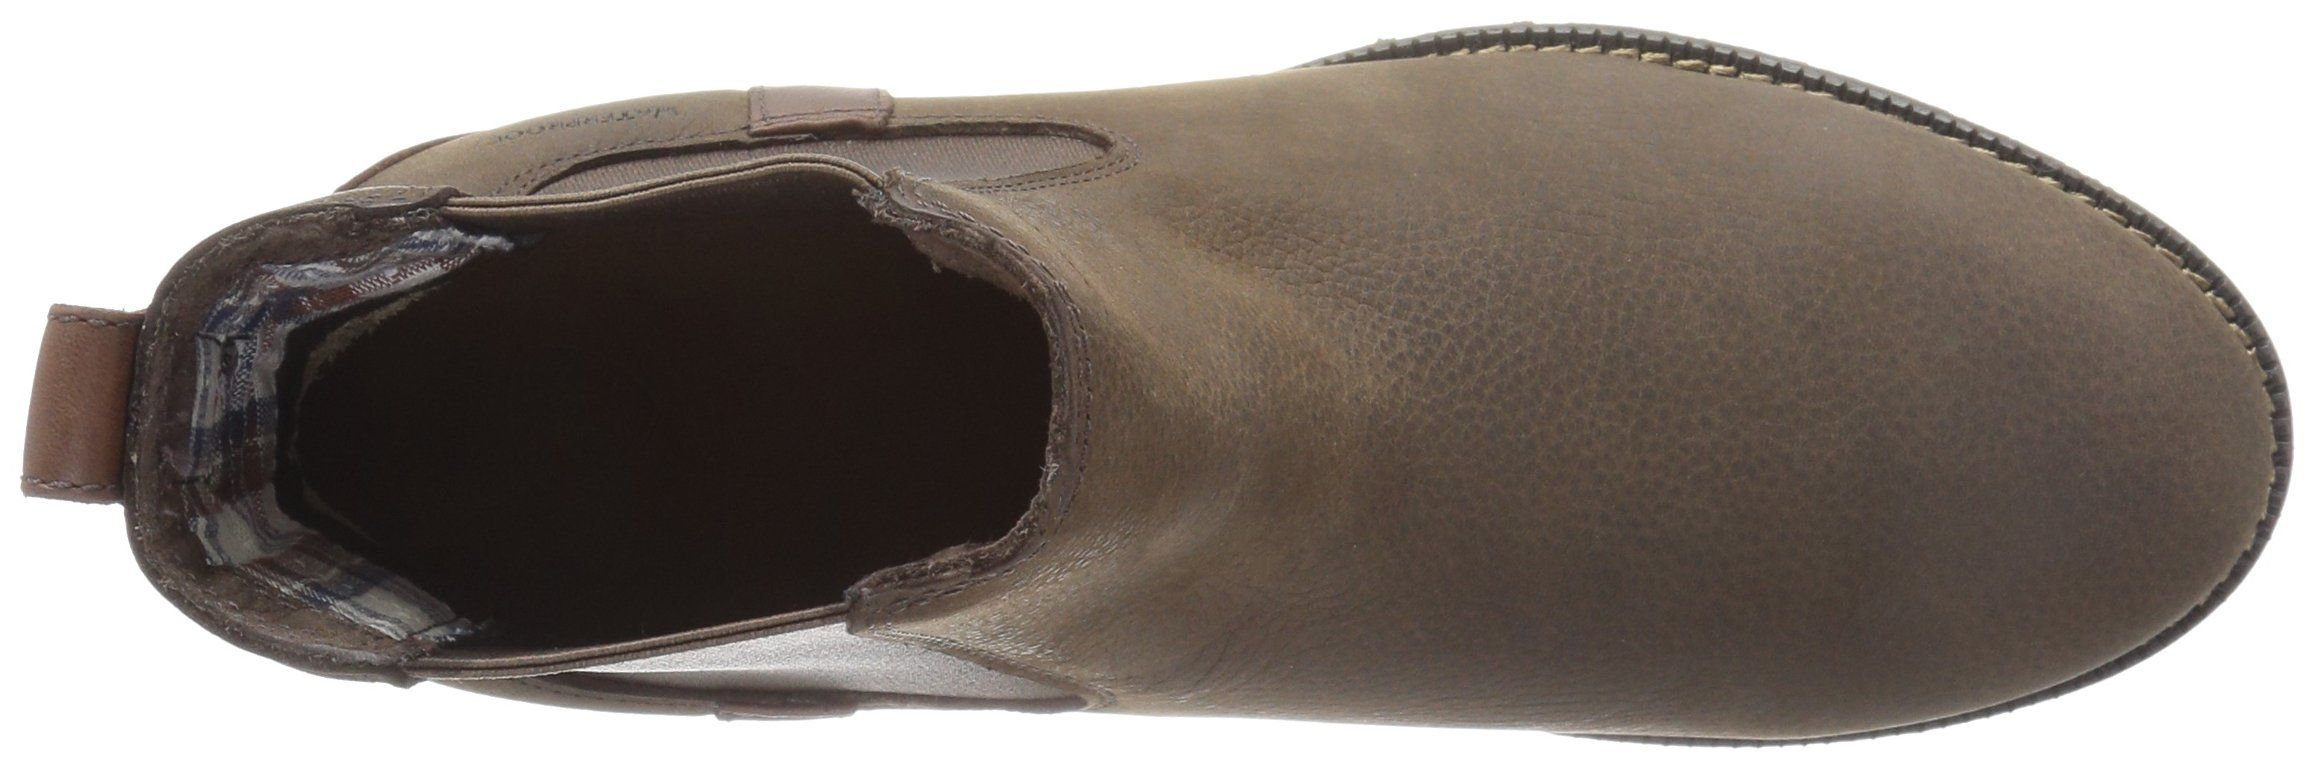 2053b8dc320f Ariat Womens Wexford H2O Country Fashion Boot Java 9 B US     For more